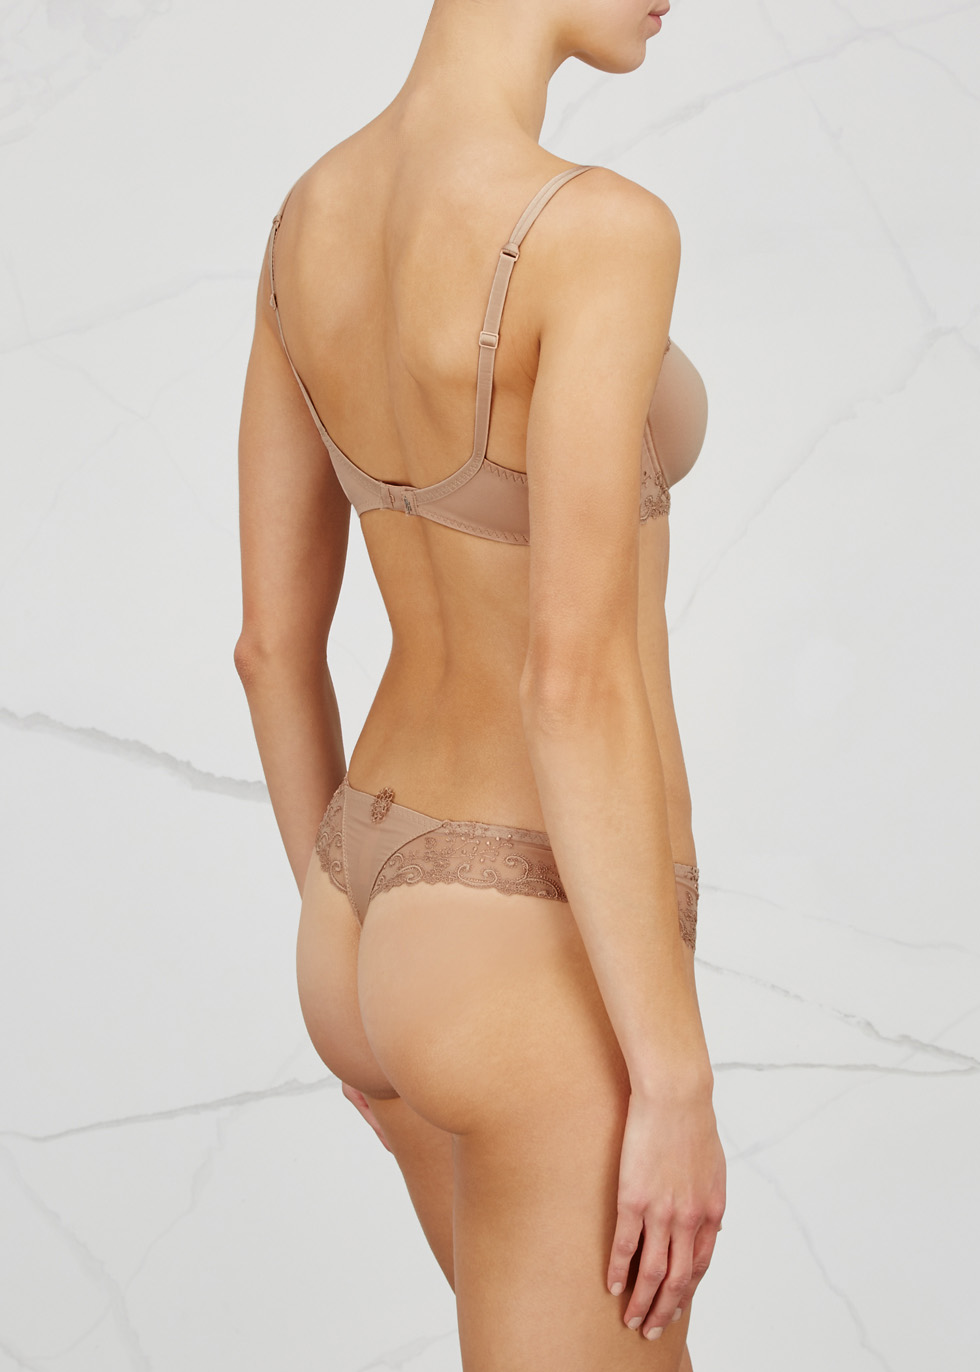 Delice embroidered thong - Simone Pérèle